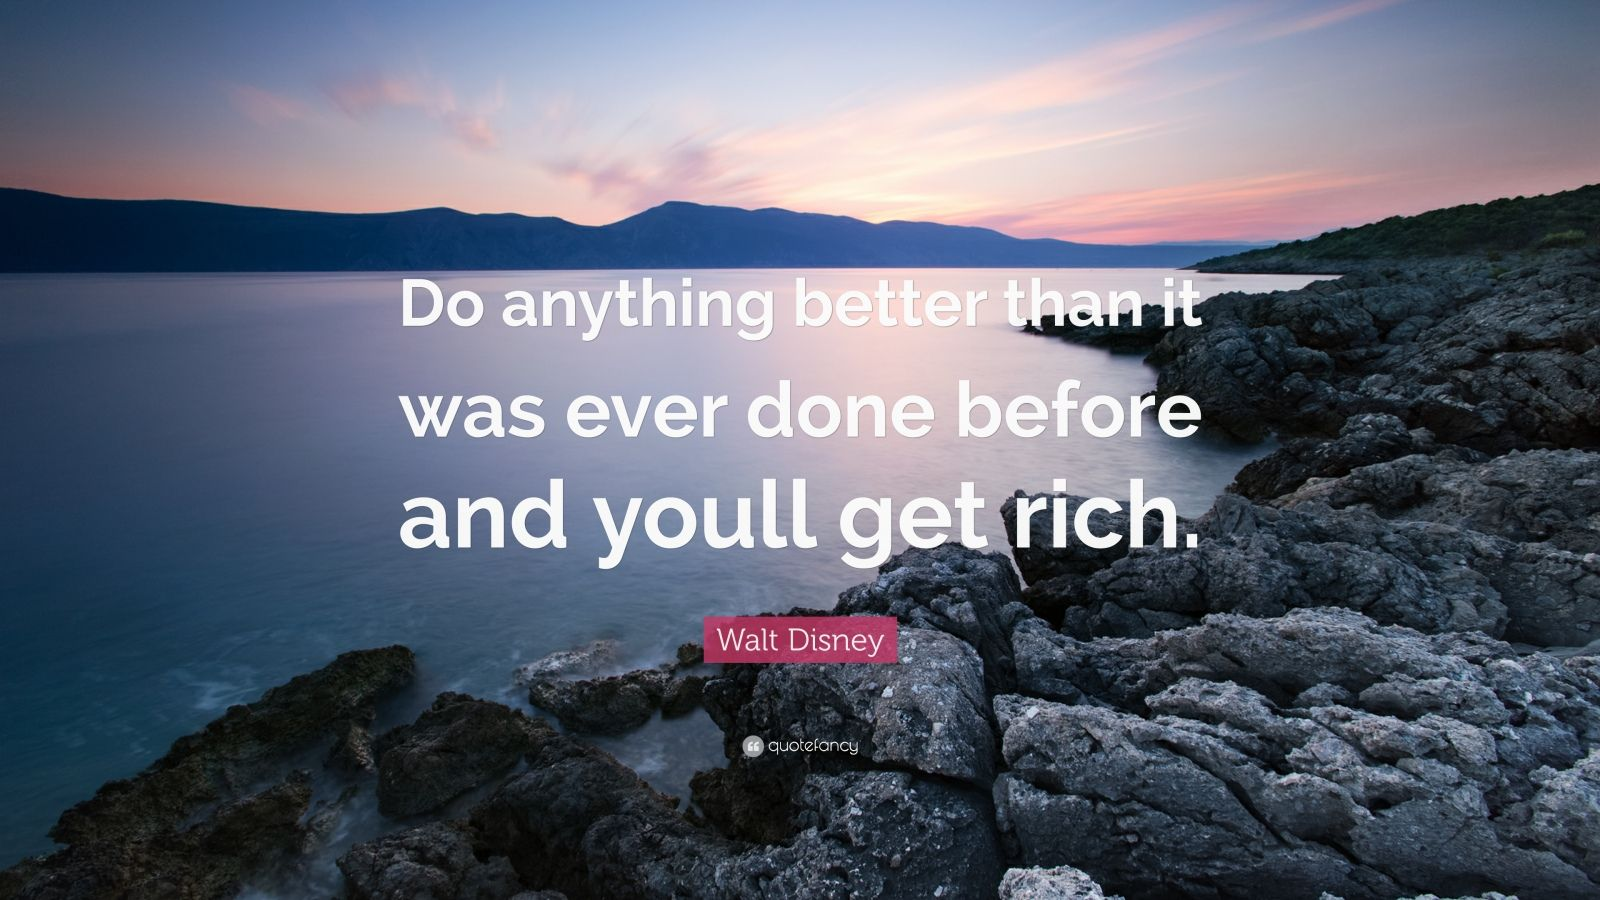 """Walt Disney Quote: """"Do anything better than it was ever done before and youll get rich."""""""